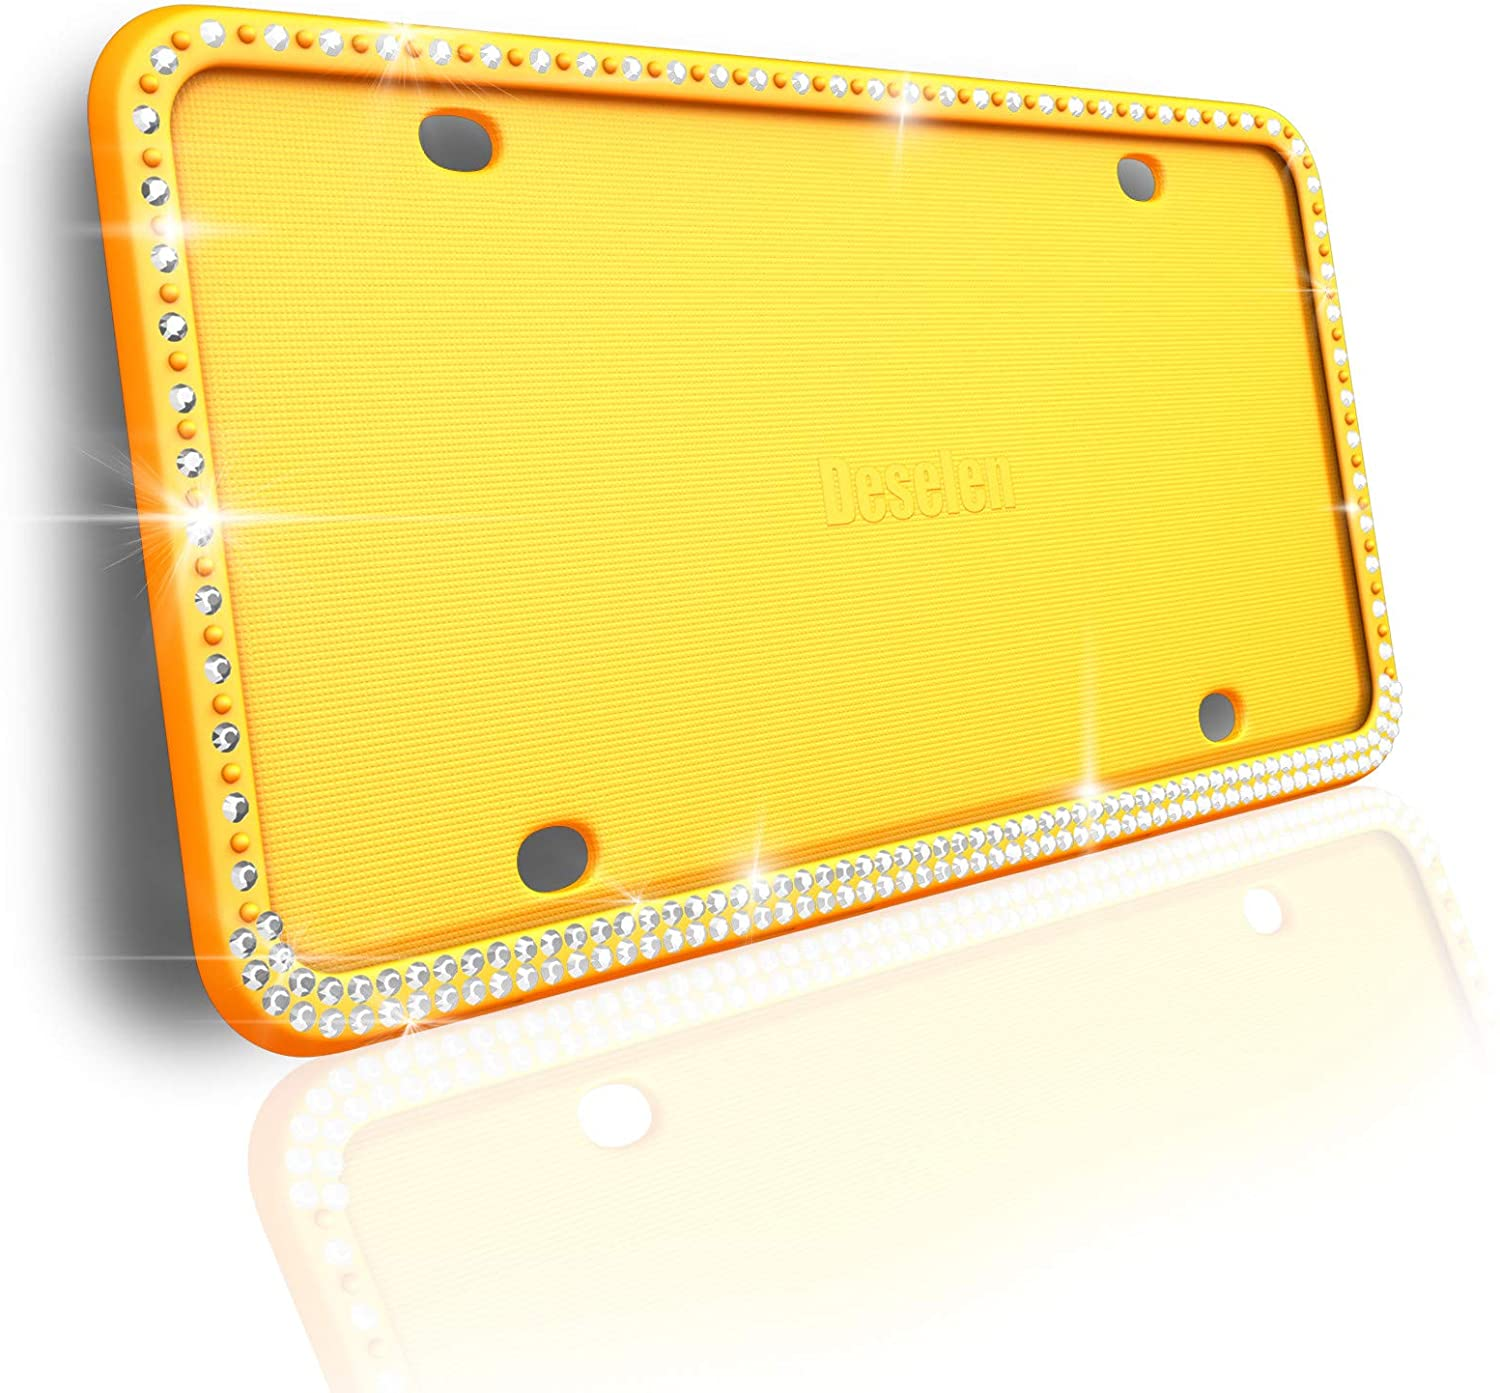 Deselen Sparkling Silicone License Plate Frame, Handcrafted Diamond Styling, Yellow, 1Pack